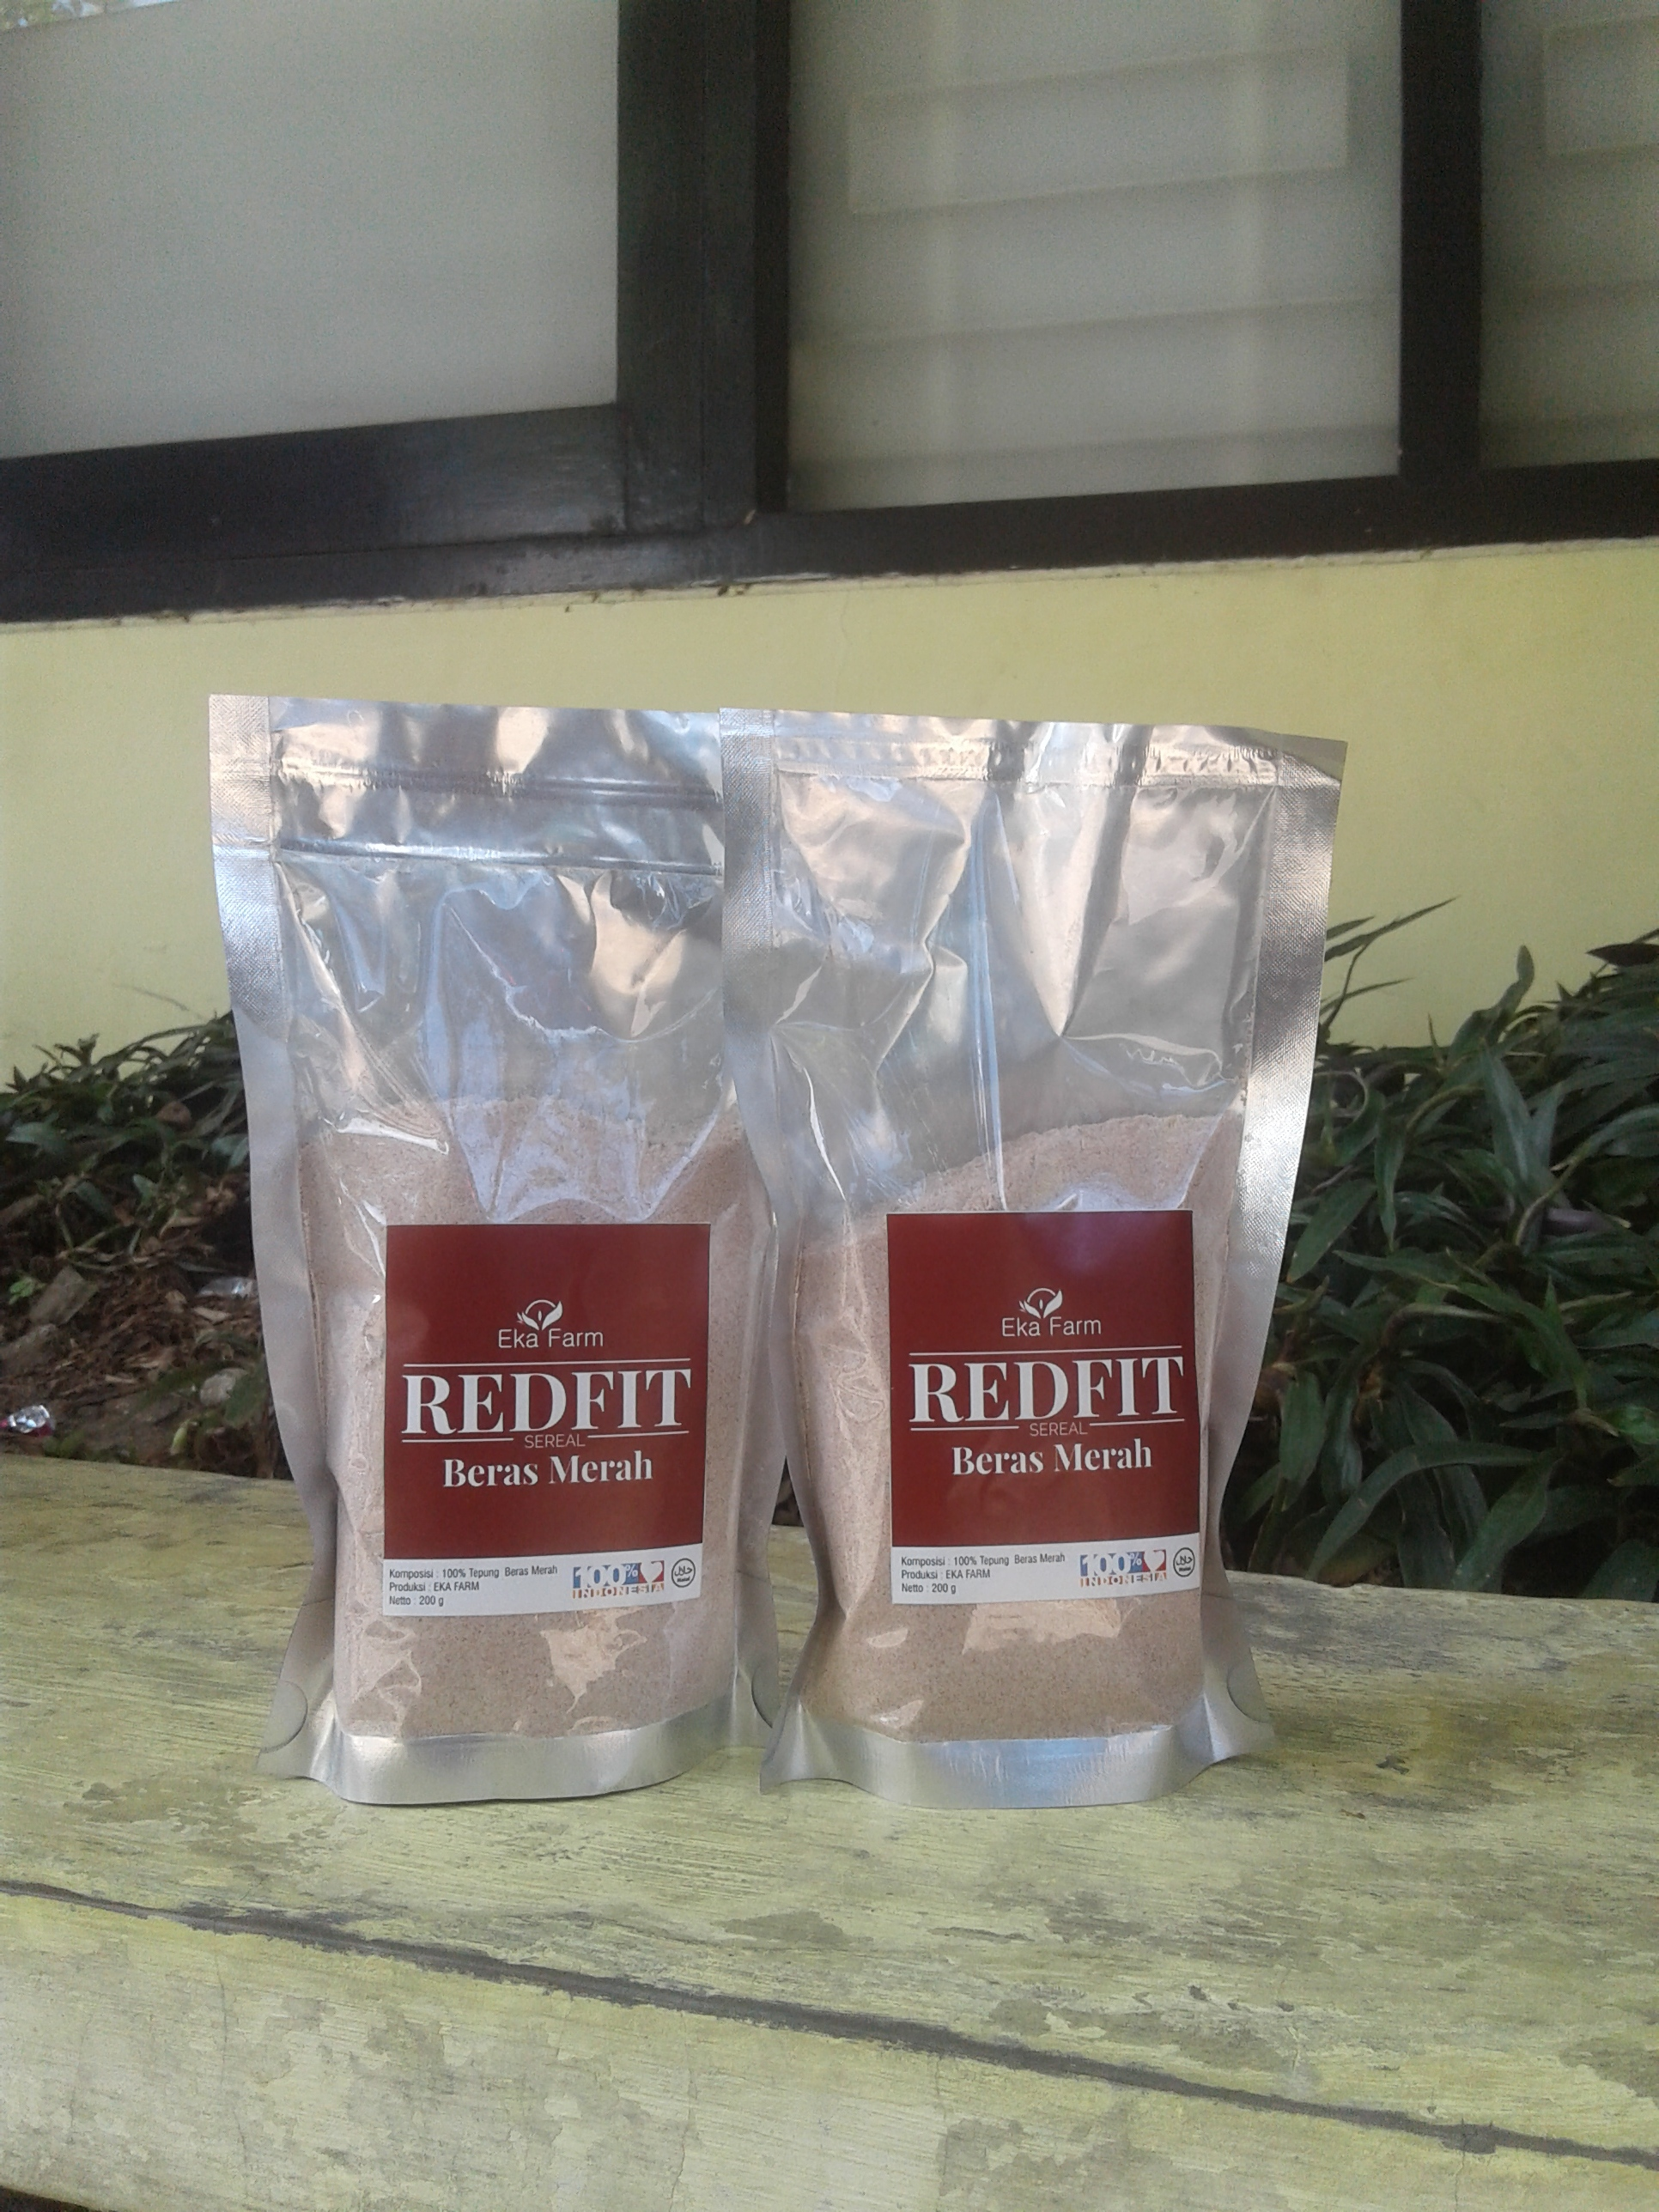 Red Fit Sereal Beras Merah 200 gr Eka Farm